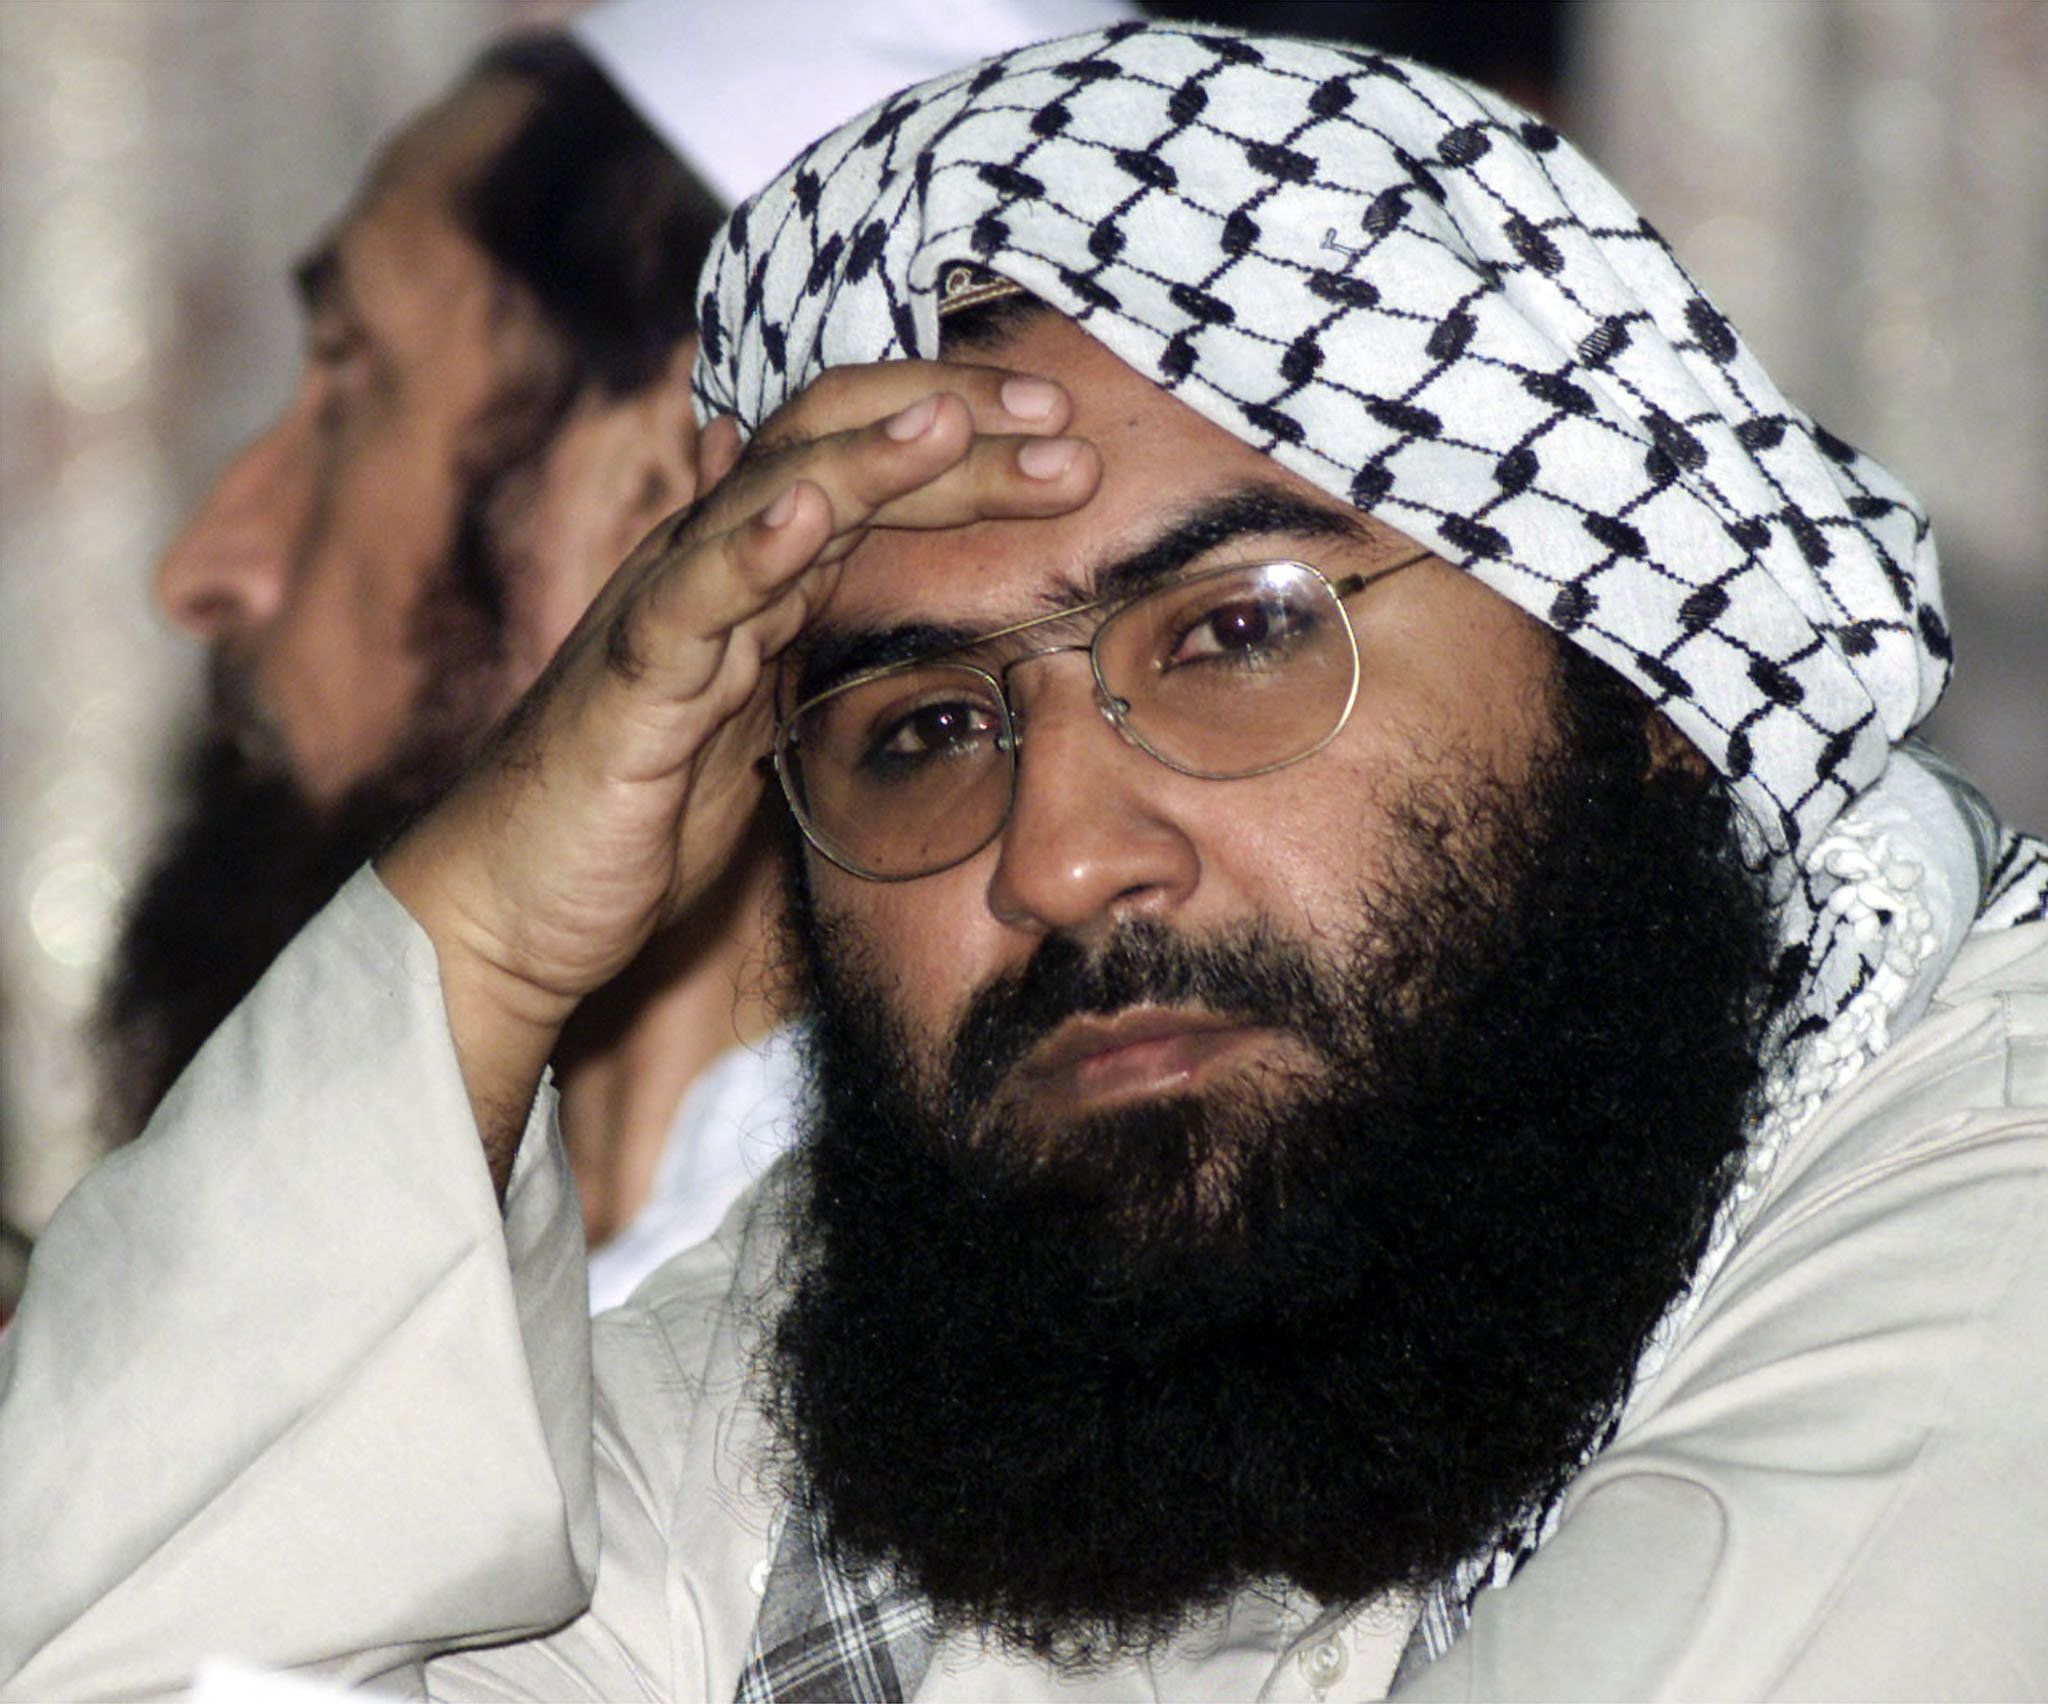 Disappointed, Says India After China Blocks Move To Designate Masood Azhar As Global